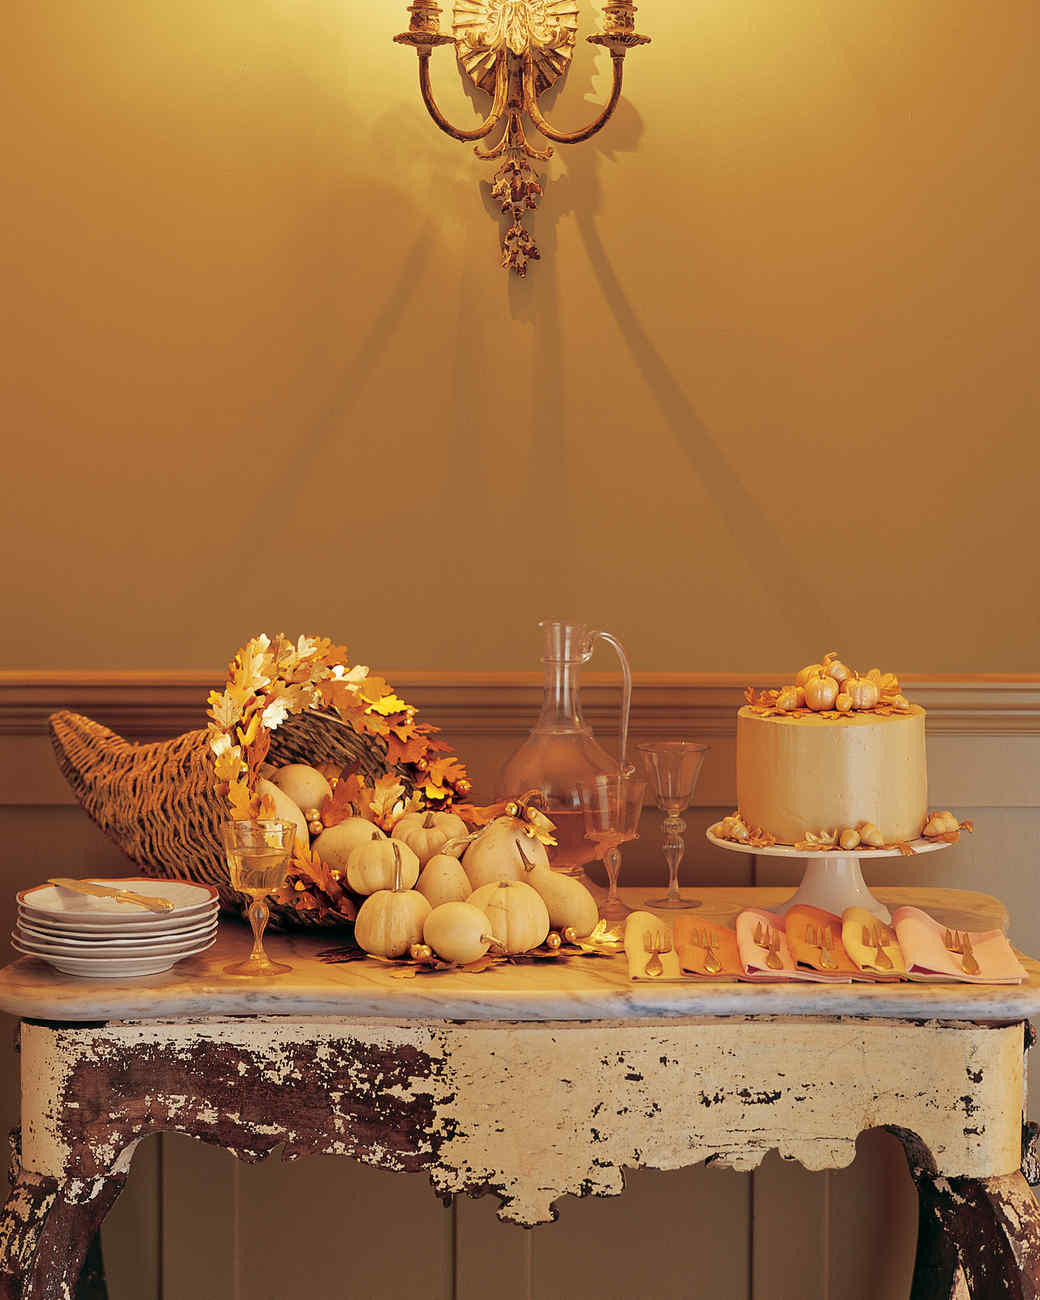 30 Fall Decor Crafts to Feel Warm and Cozy at Home | Martha Stewart